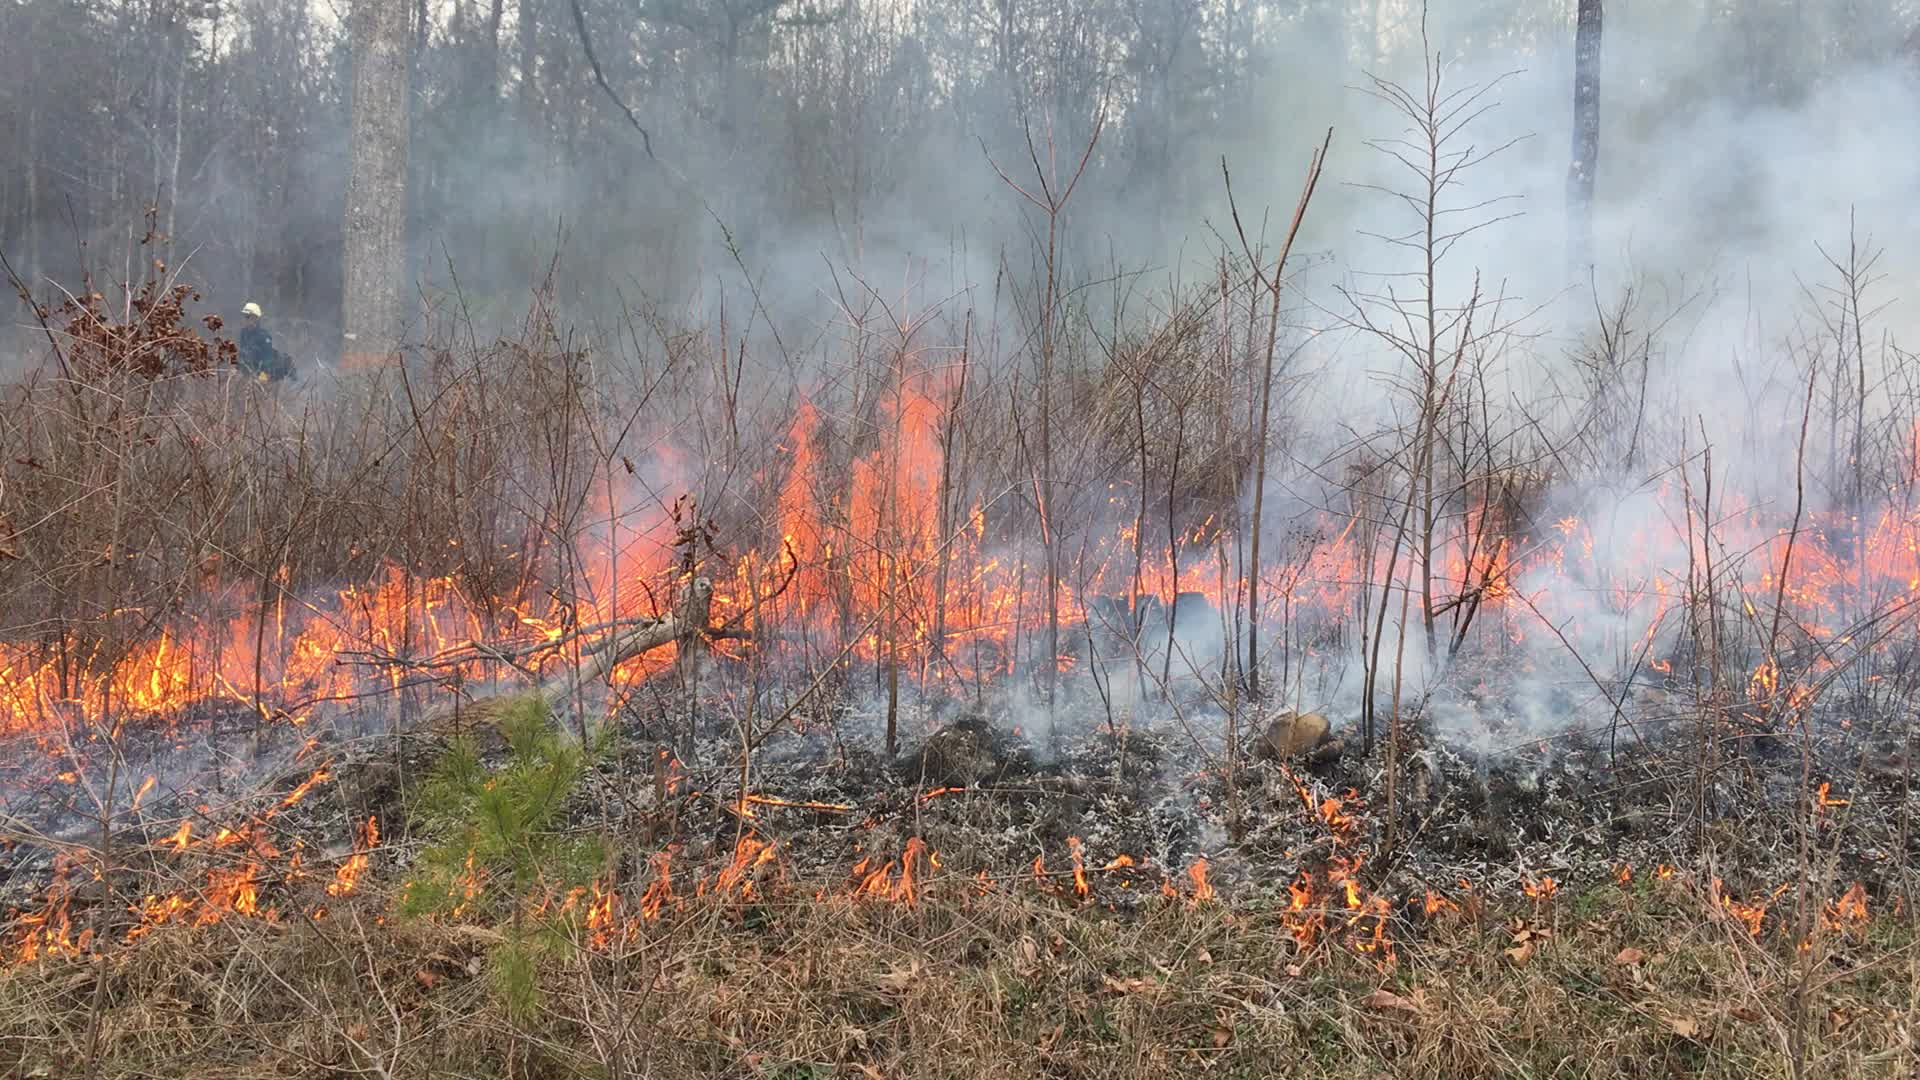 File:Controlled burn to restore mountain longleaf pine in northwest